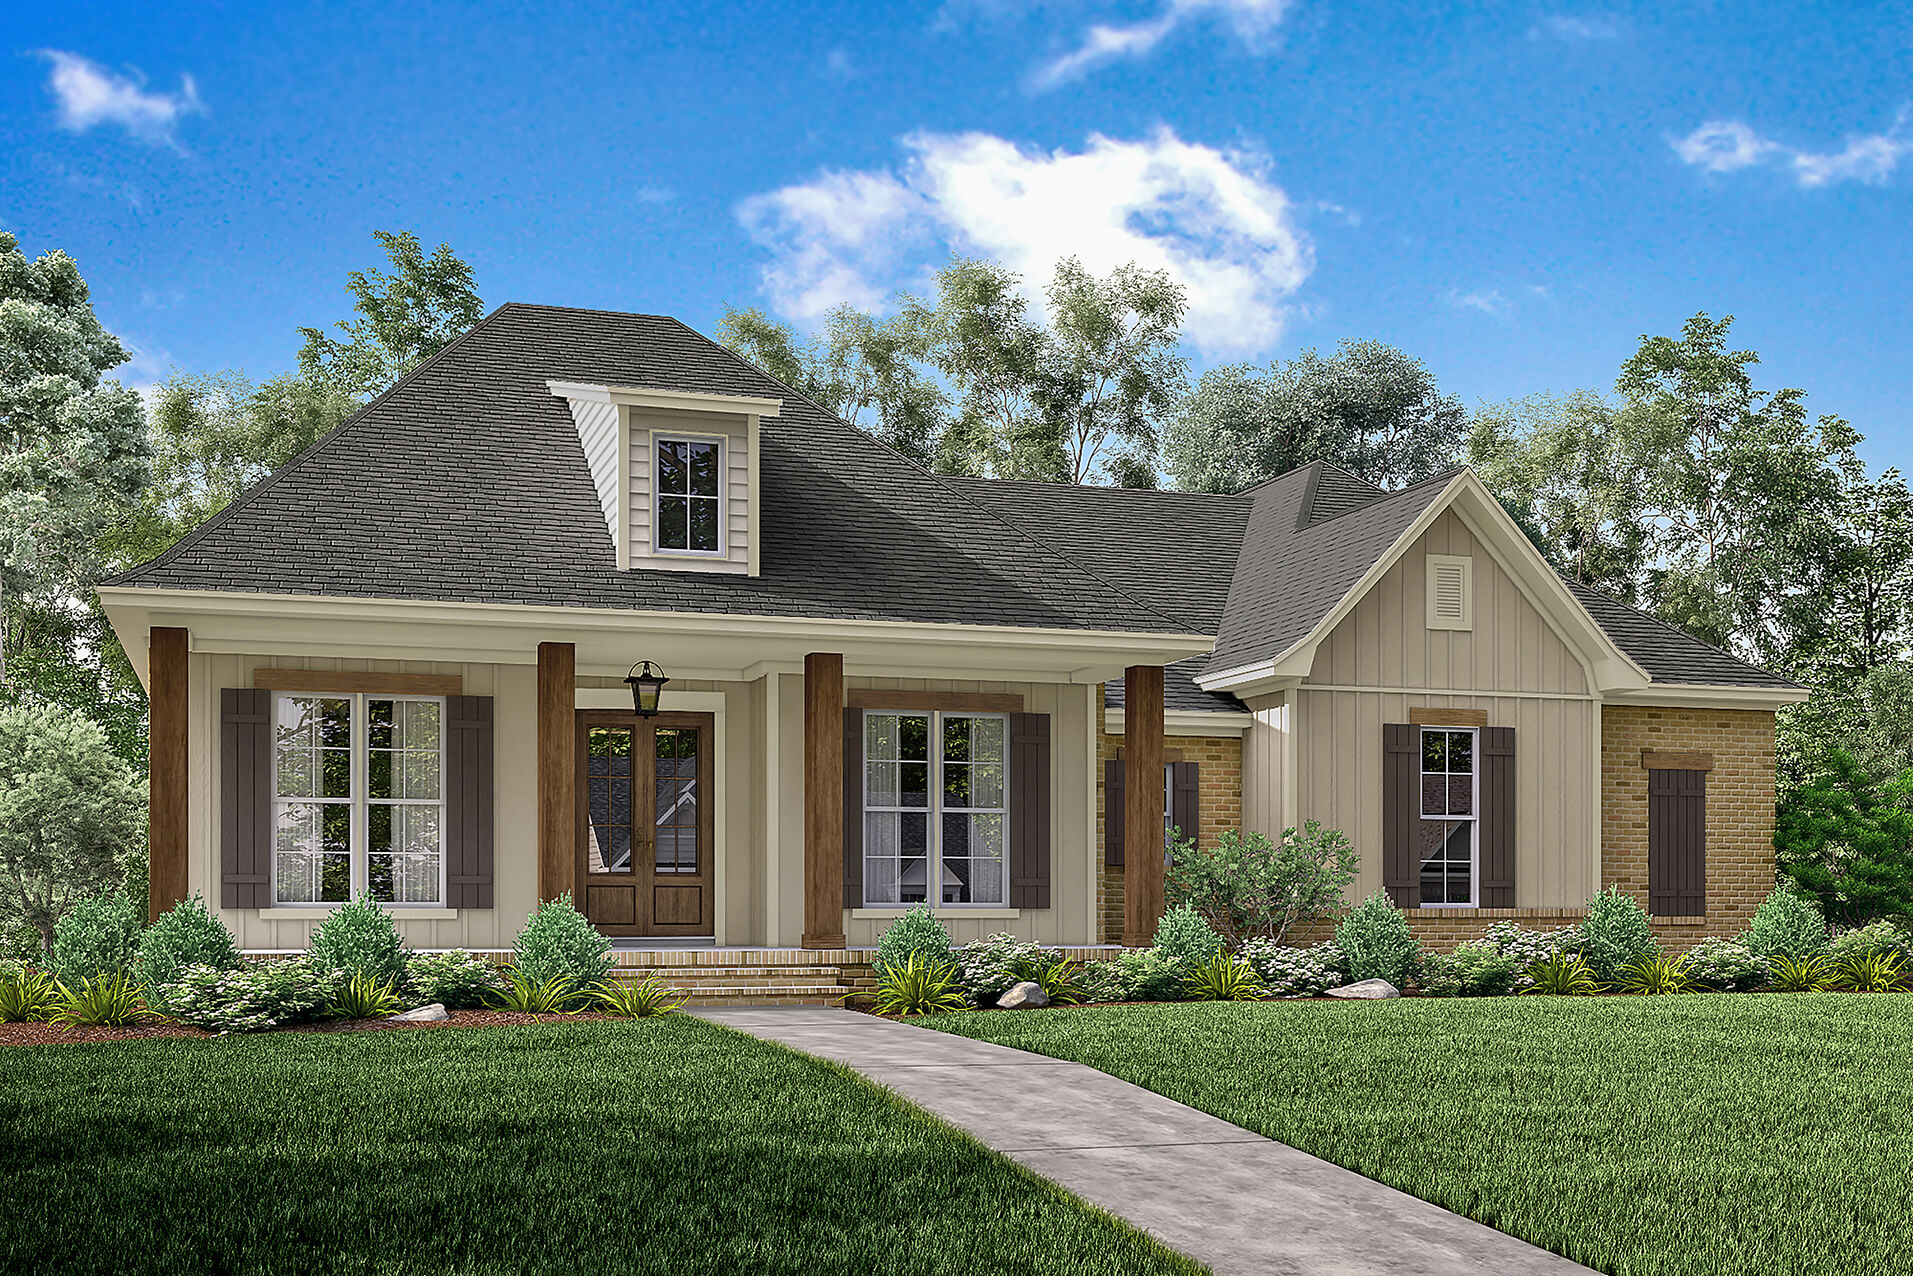 3 bedrm 1900 sq ft acadian house plan 142 1163 for House plann